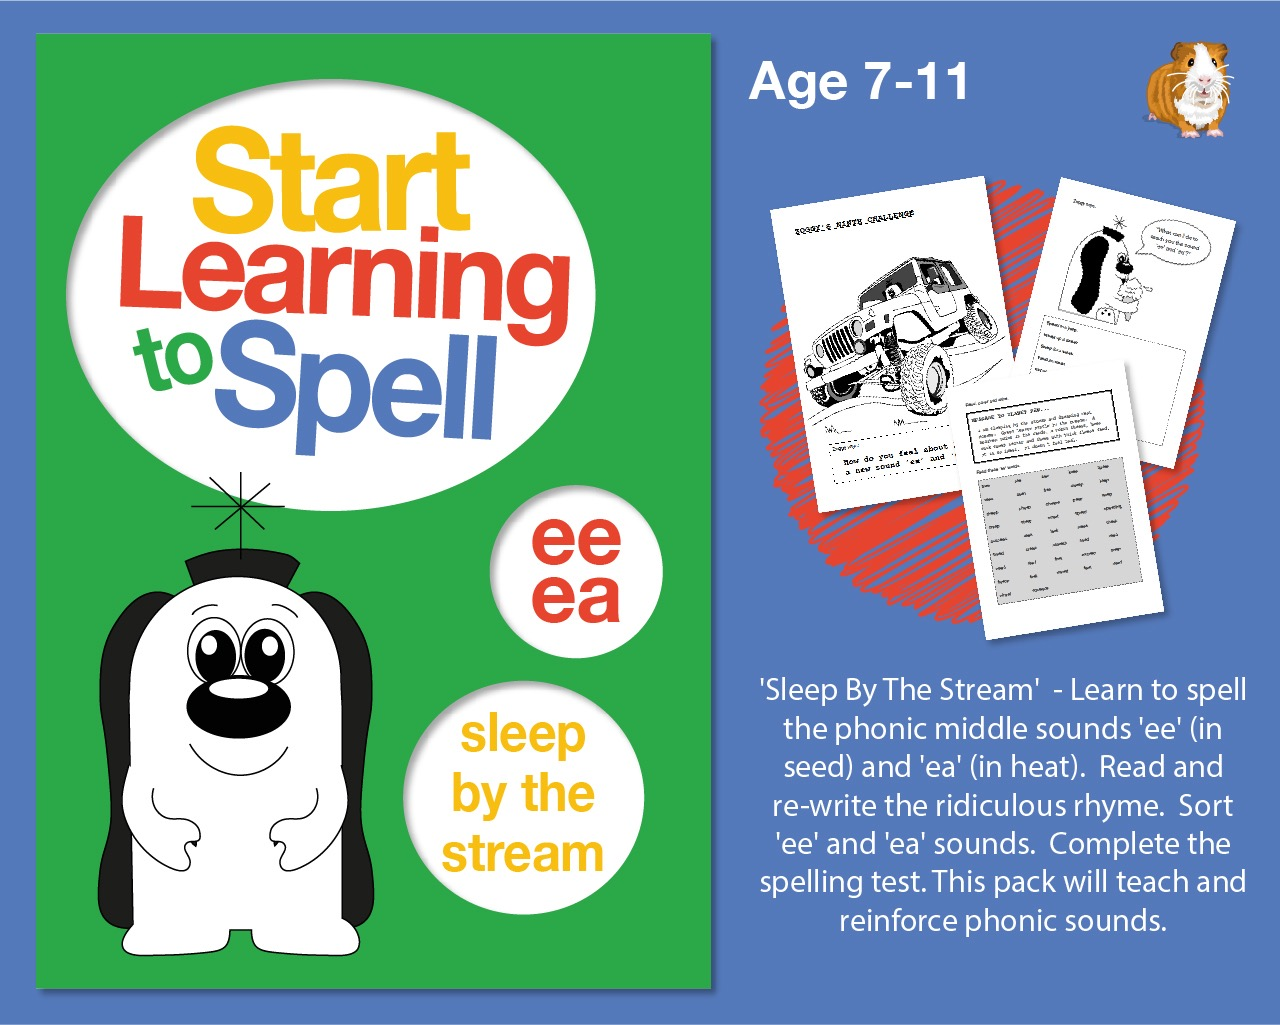 'Sleep By The Stream' Learn To Spell Words With 'ee' And 'ea' (7-11 years)